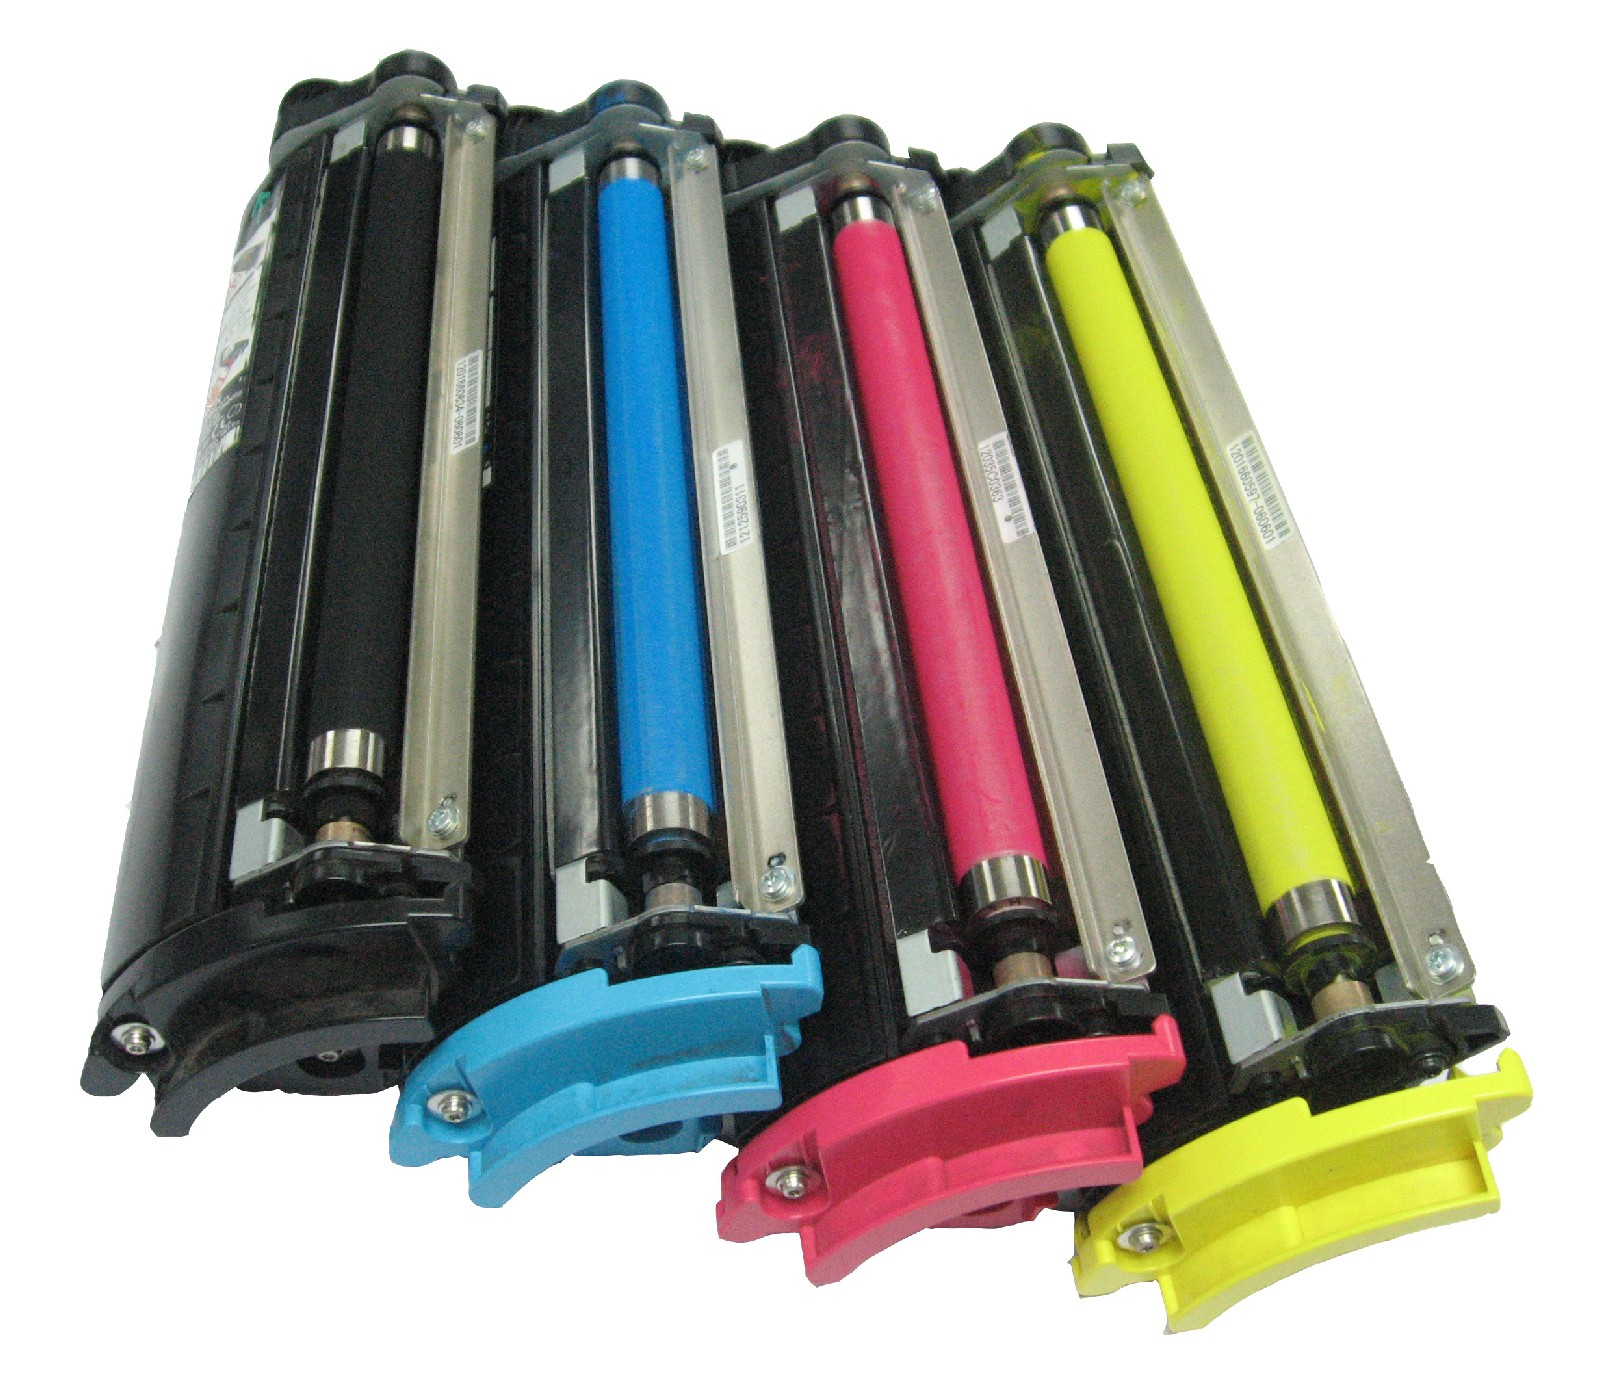 Tonner For Printer Learn More About Printer Toner Cartridges For Better Use